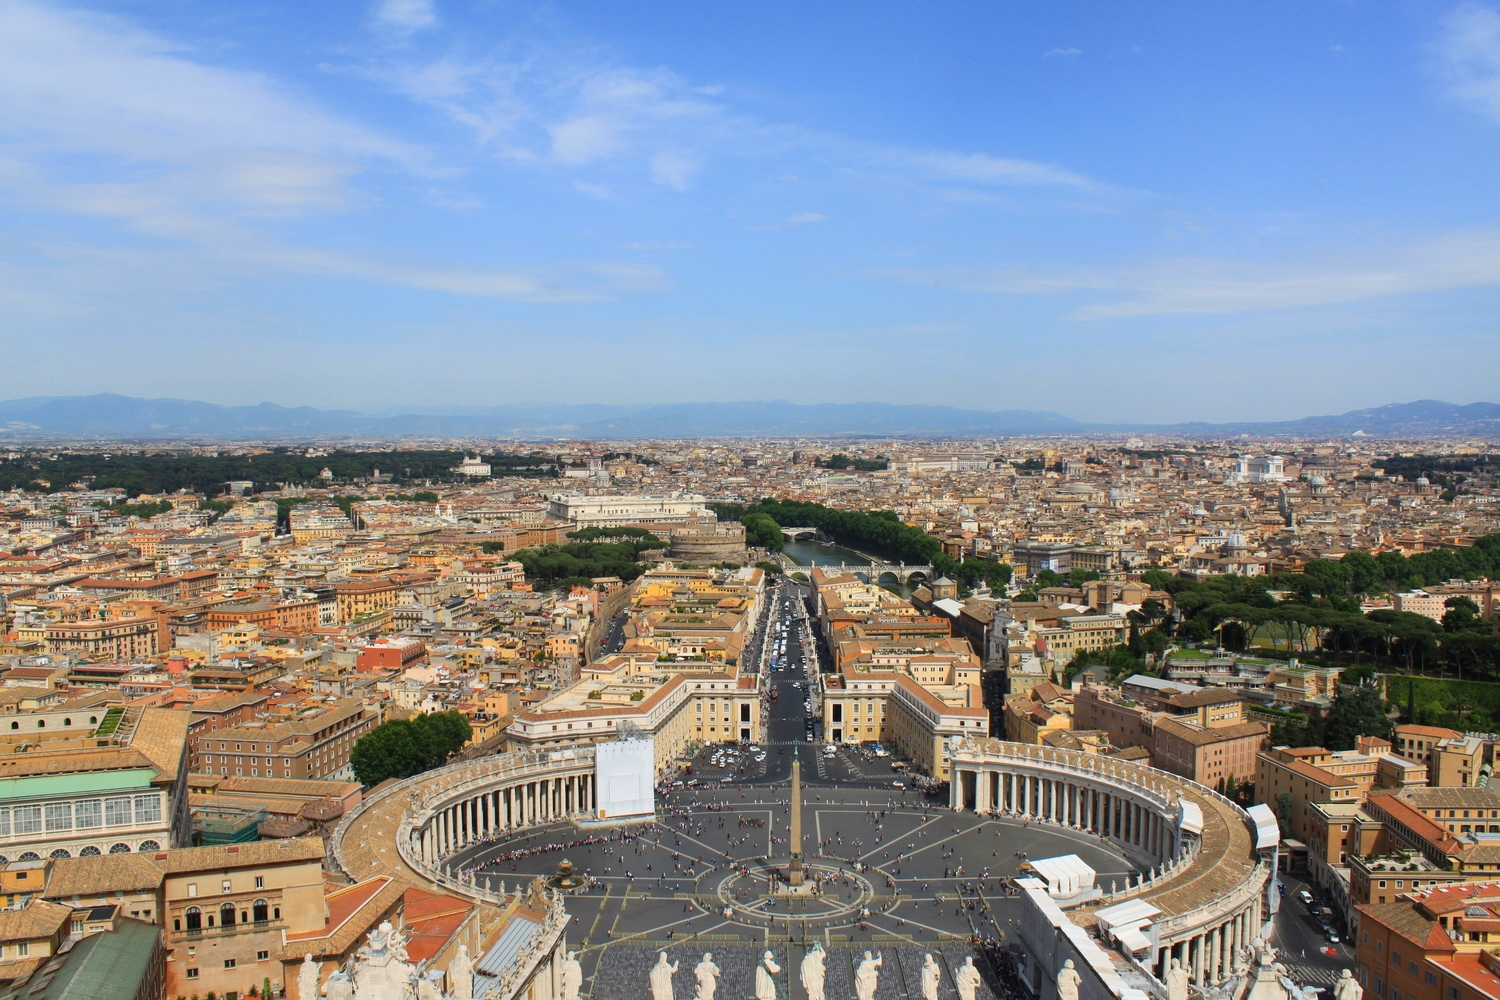 Saint Peter's Square as seen from the Basilica's cupola